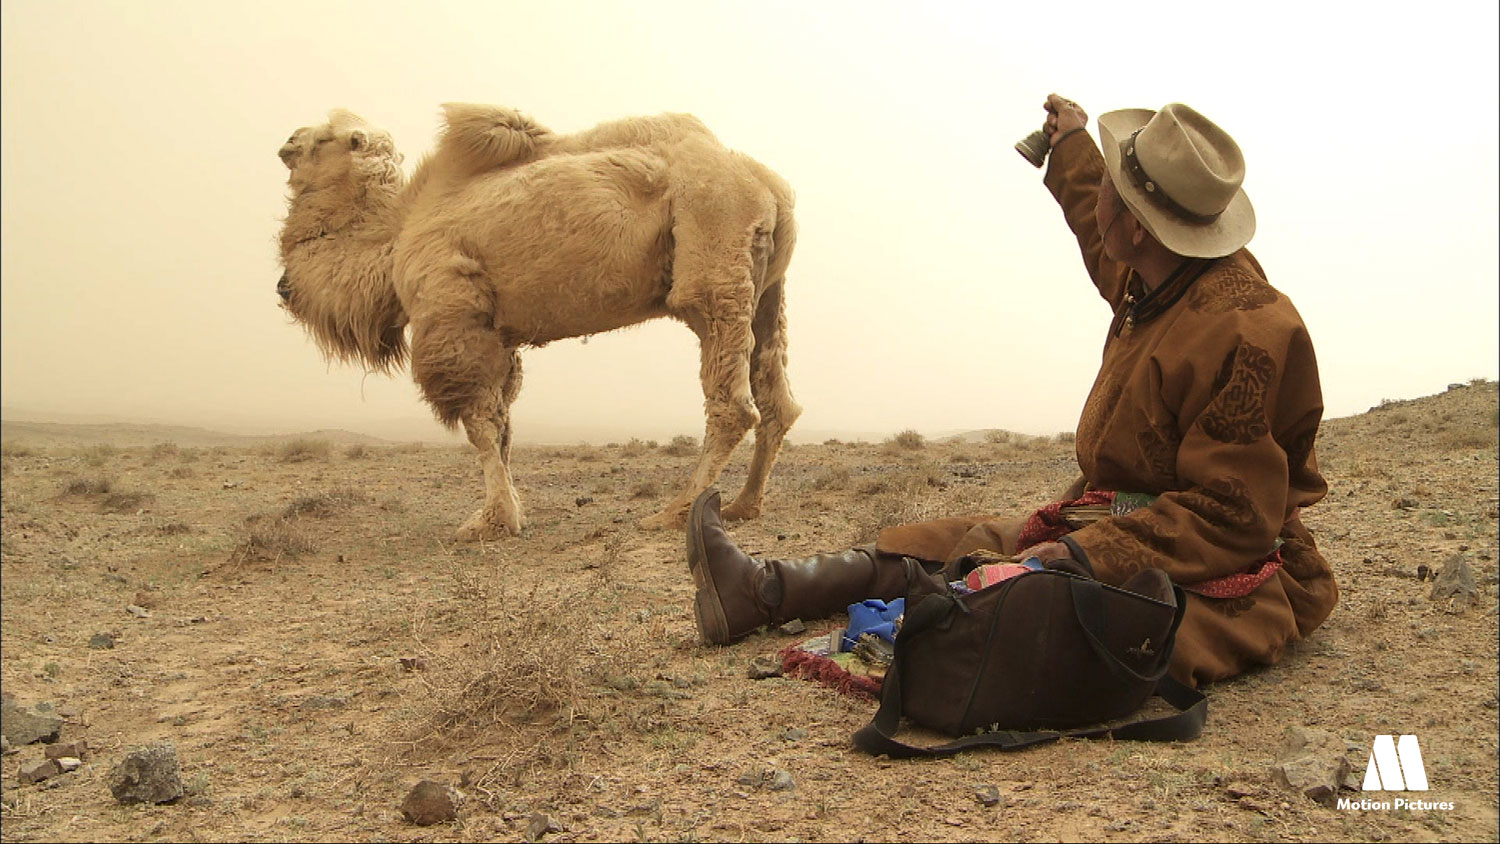 camello y hombre sentado en el suelo, documentary changantime, the white camel, documetal changantime, el camello blanco